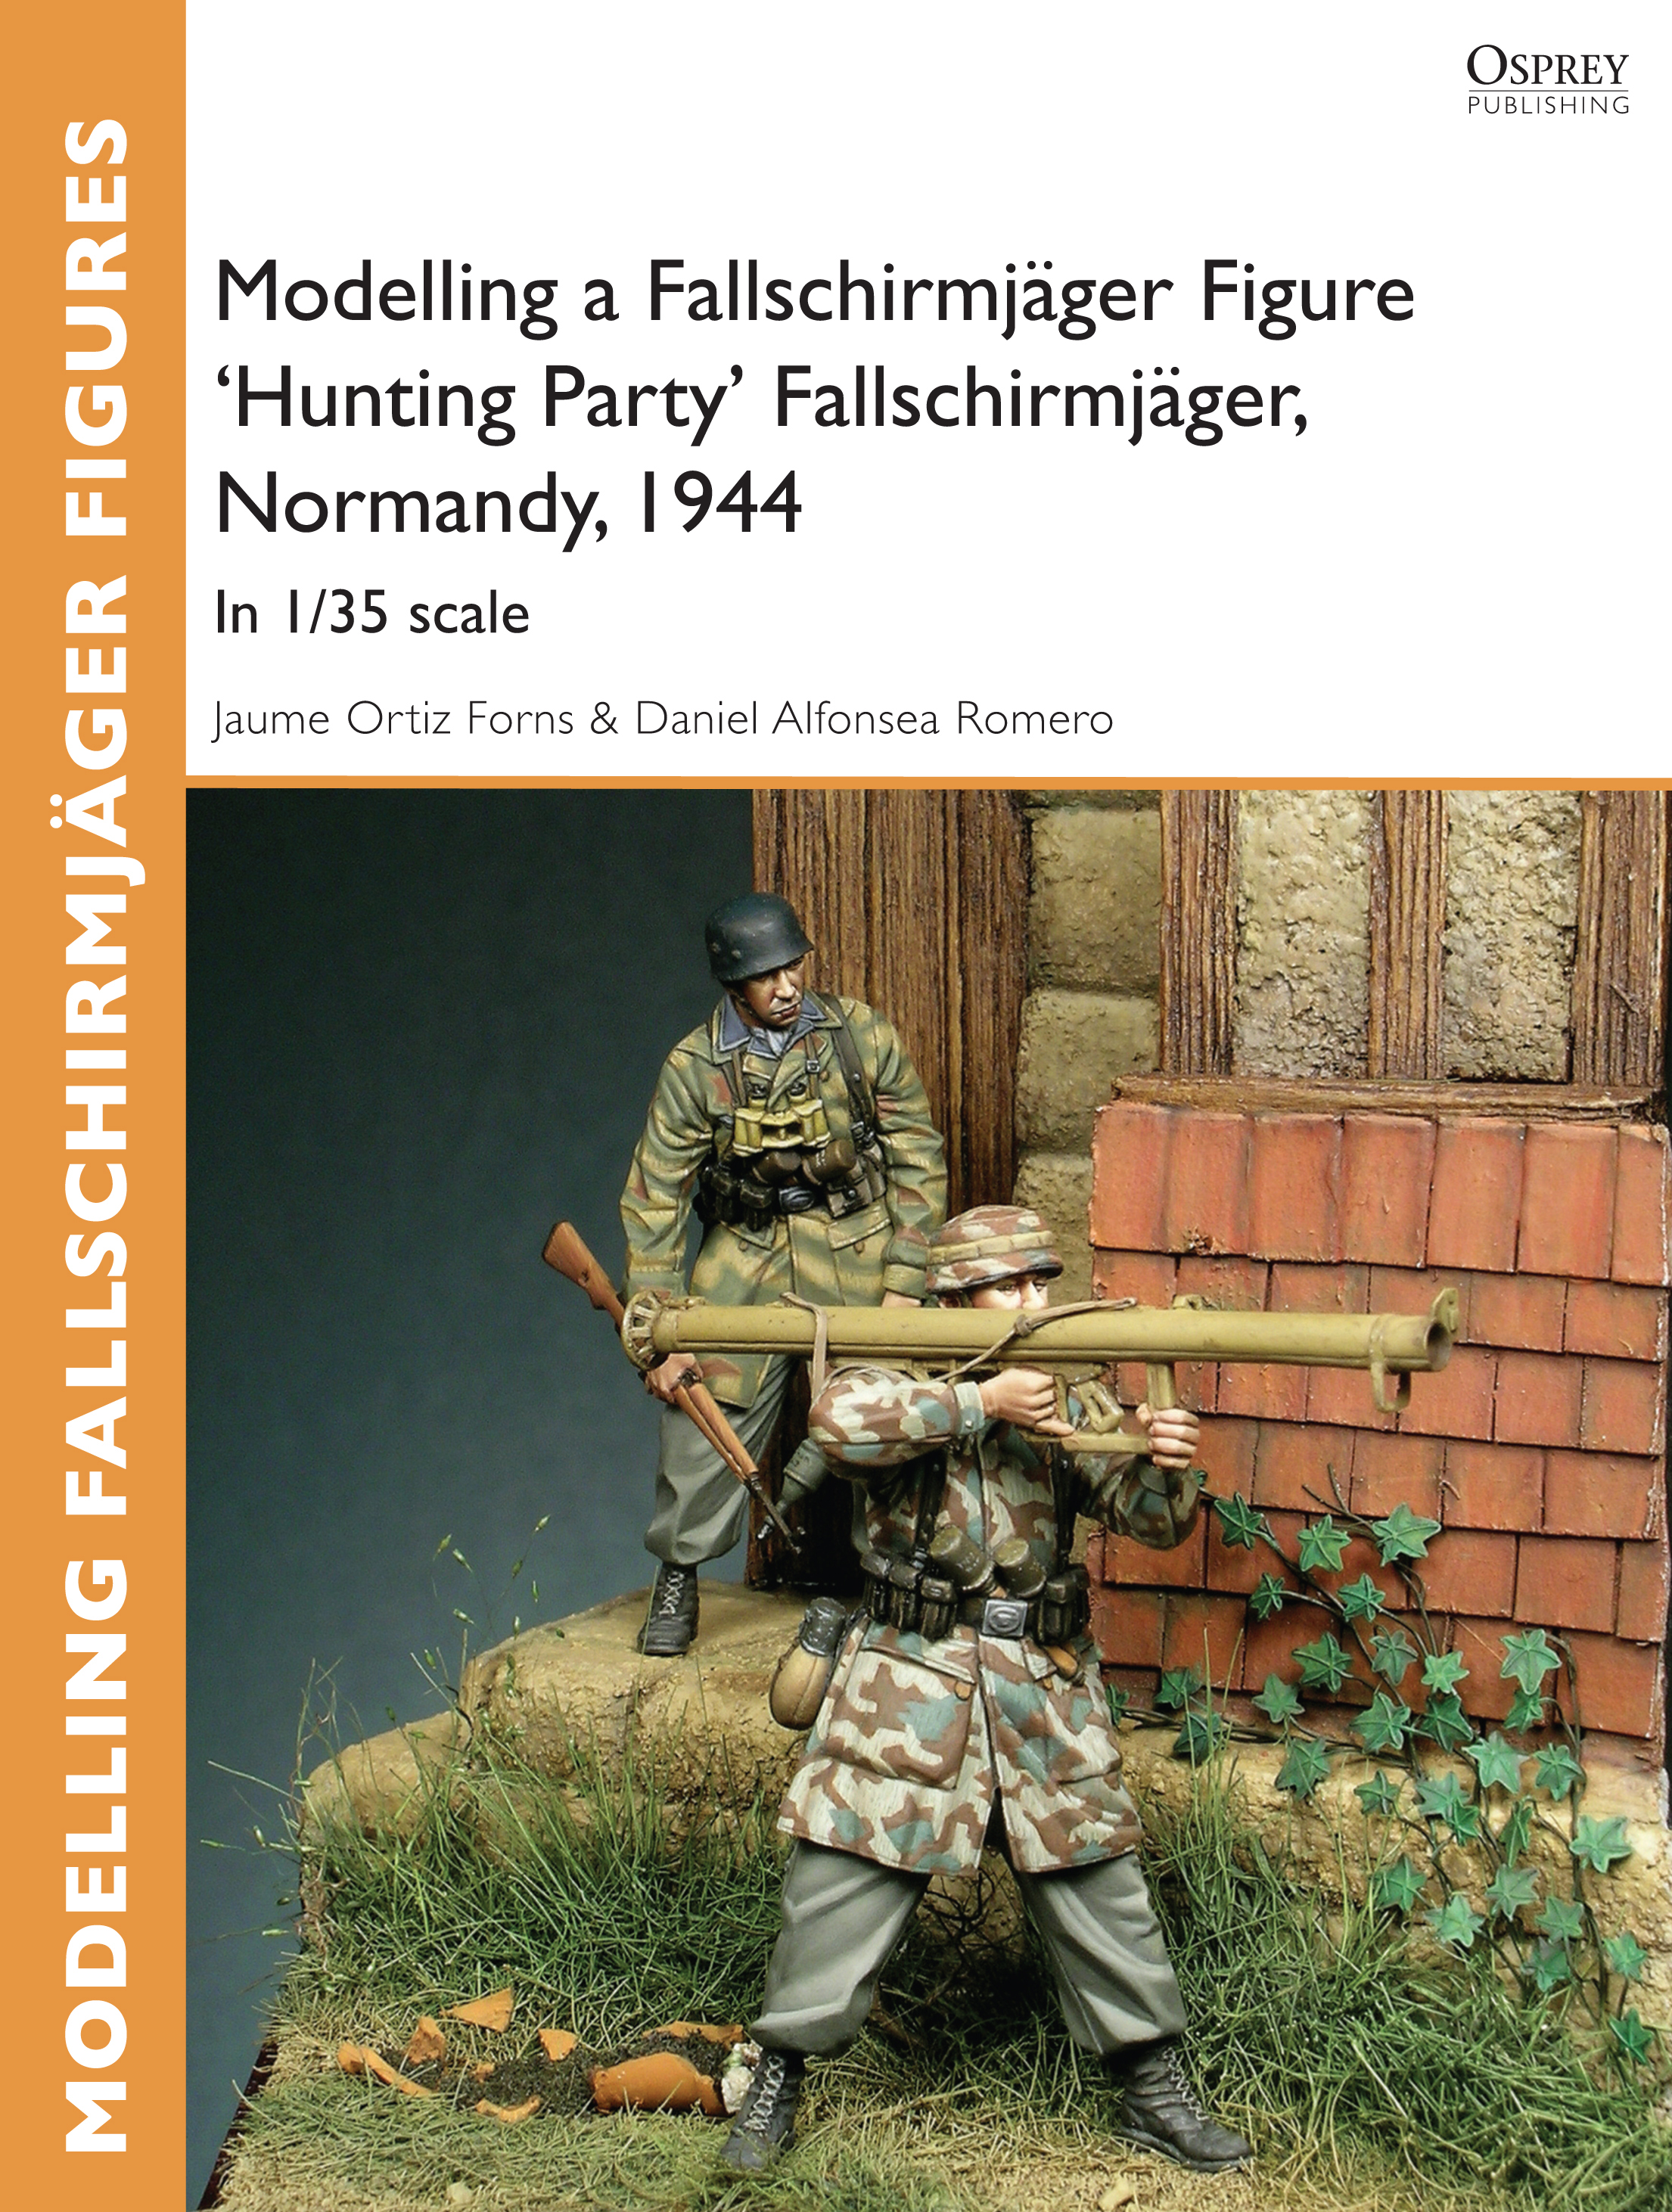 Modelling a Fallschirmj�ger Figure 'Hunting Party' Fallschirmj�ger,  Normandy,  1944: In 1/35 scale